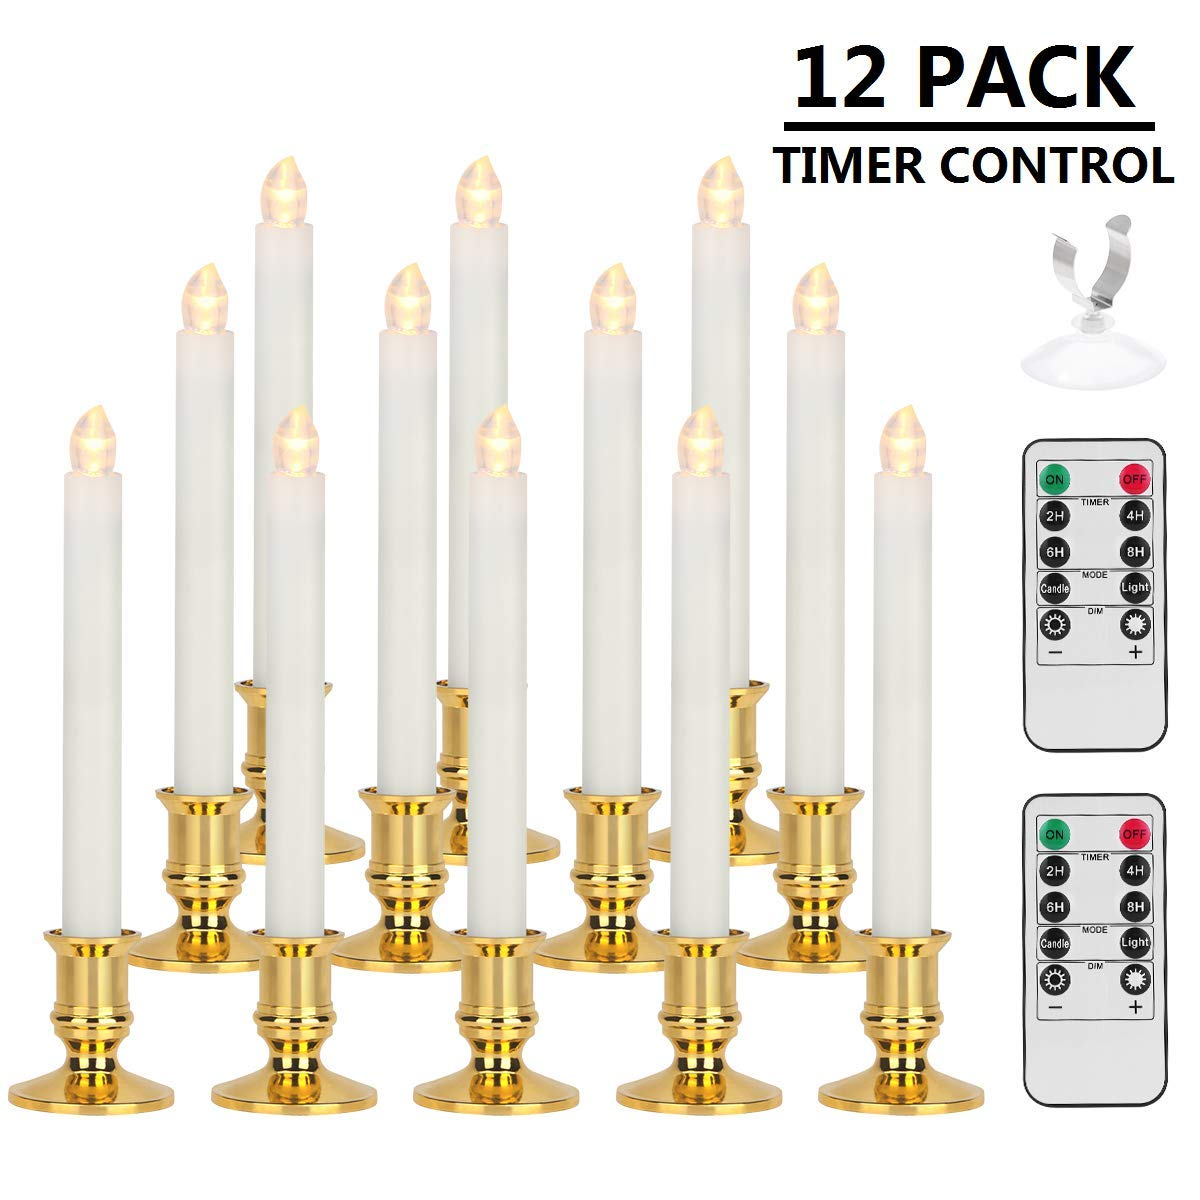 Window Candles, MAOYUE 12 Pack LED Candles with Timer Christmas Flameless Candles Battery Operated Flickering Candles with 2 Remote Controls, Gold Candle Holders, Suction Cups by MAOYUE